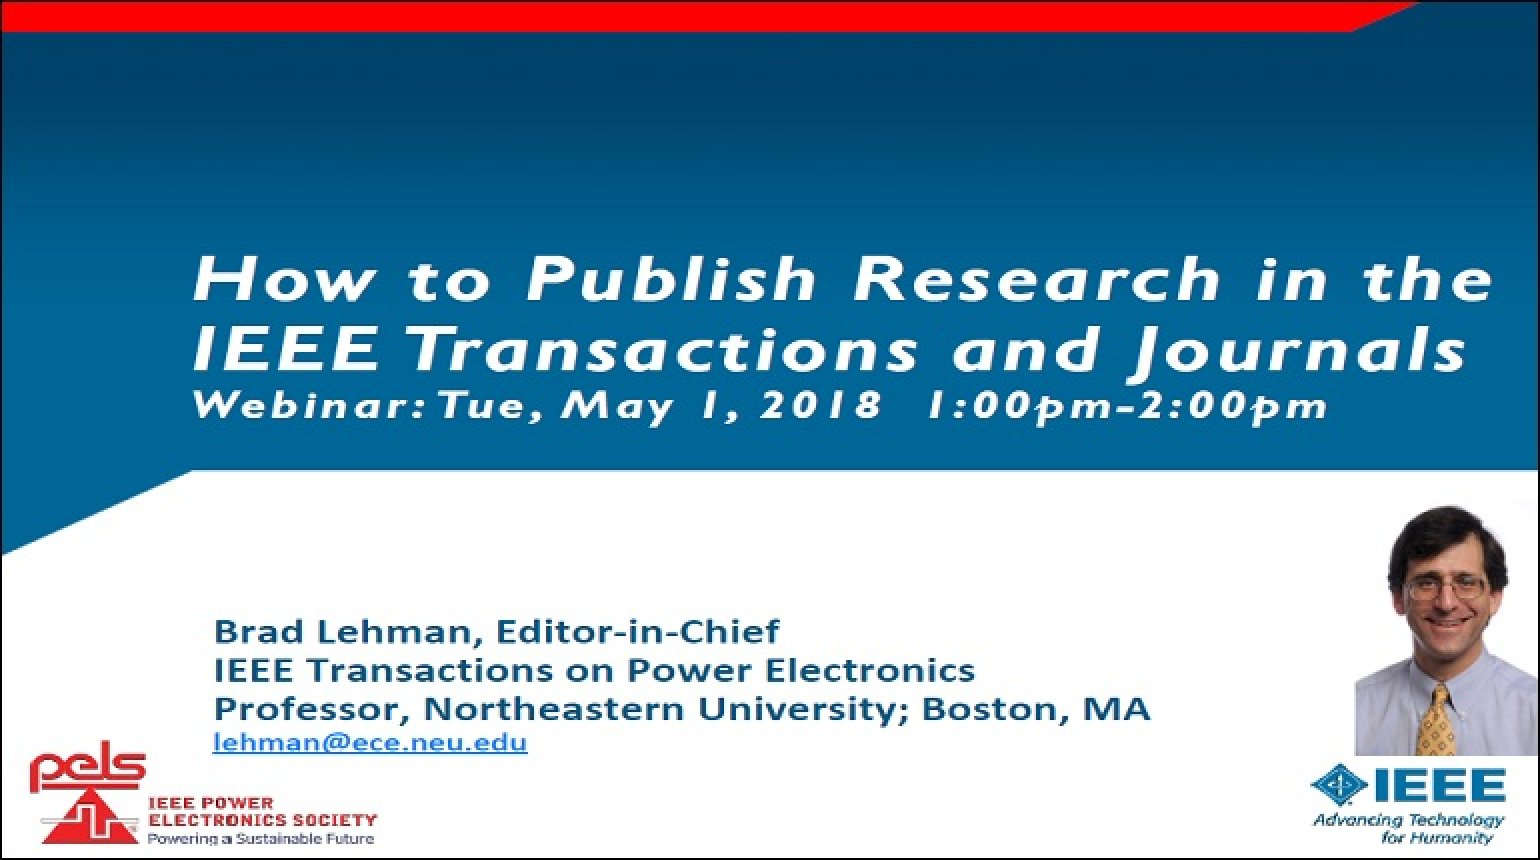 How to publish research in the IEEE Transactions and Journals Video